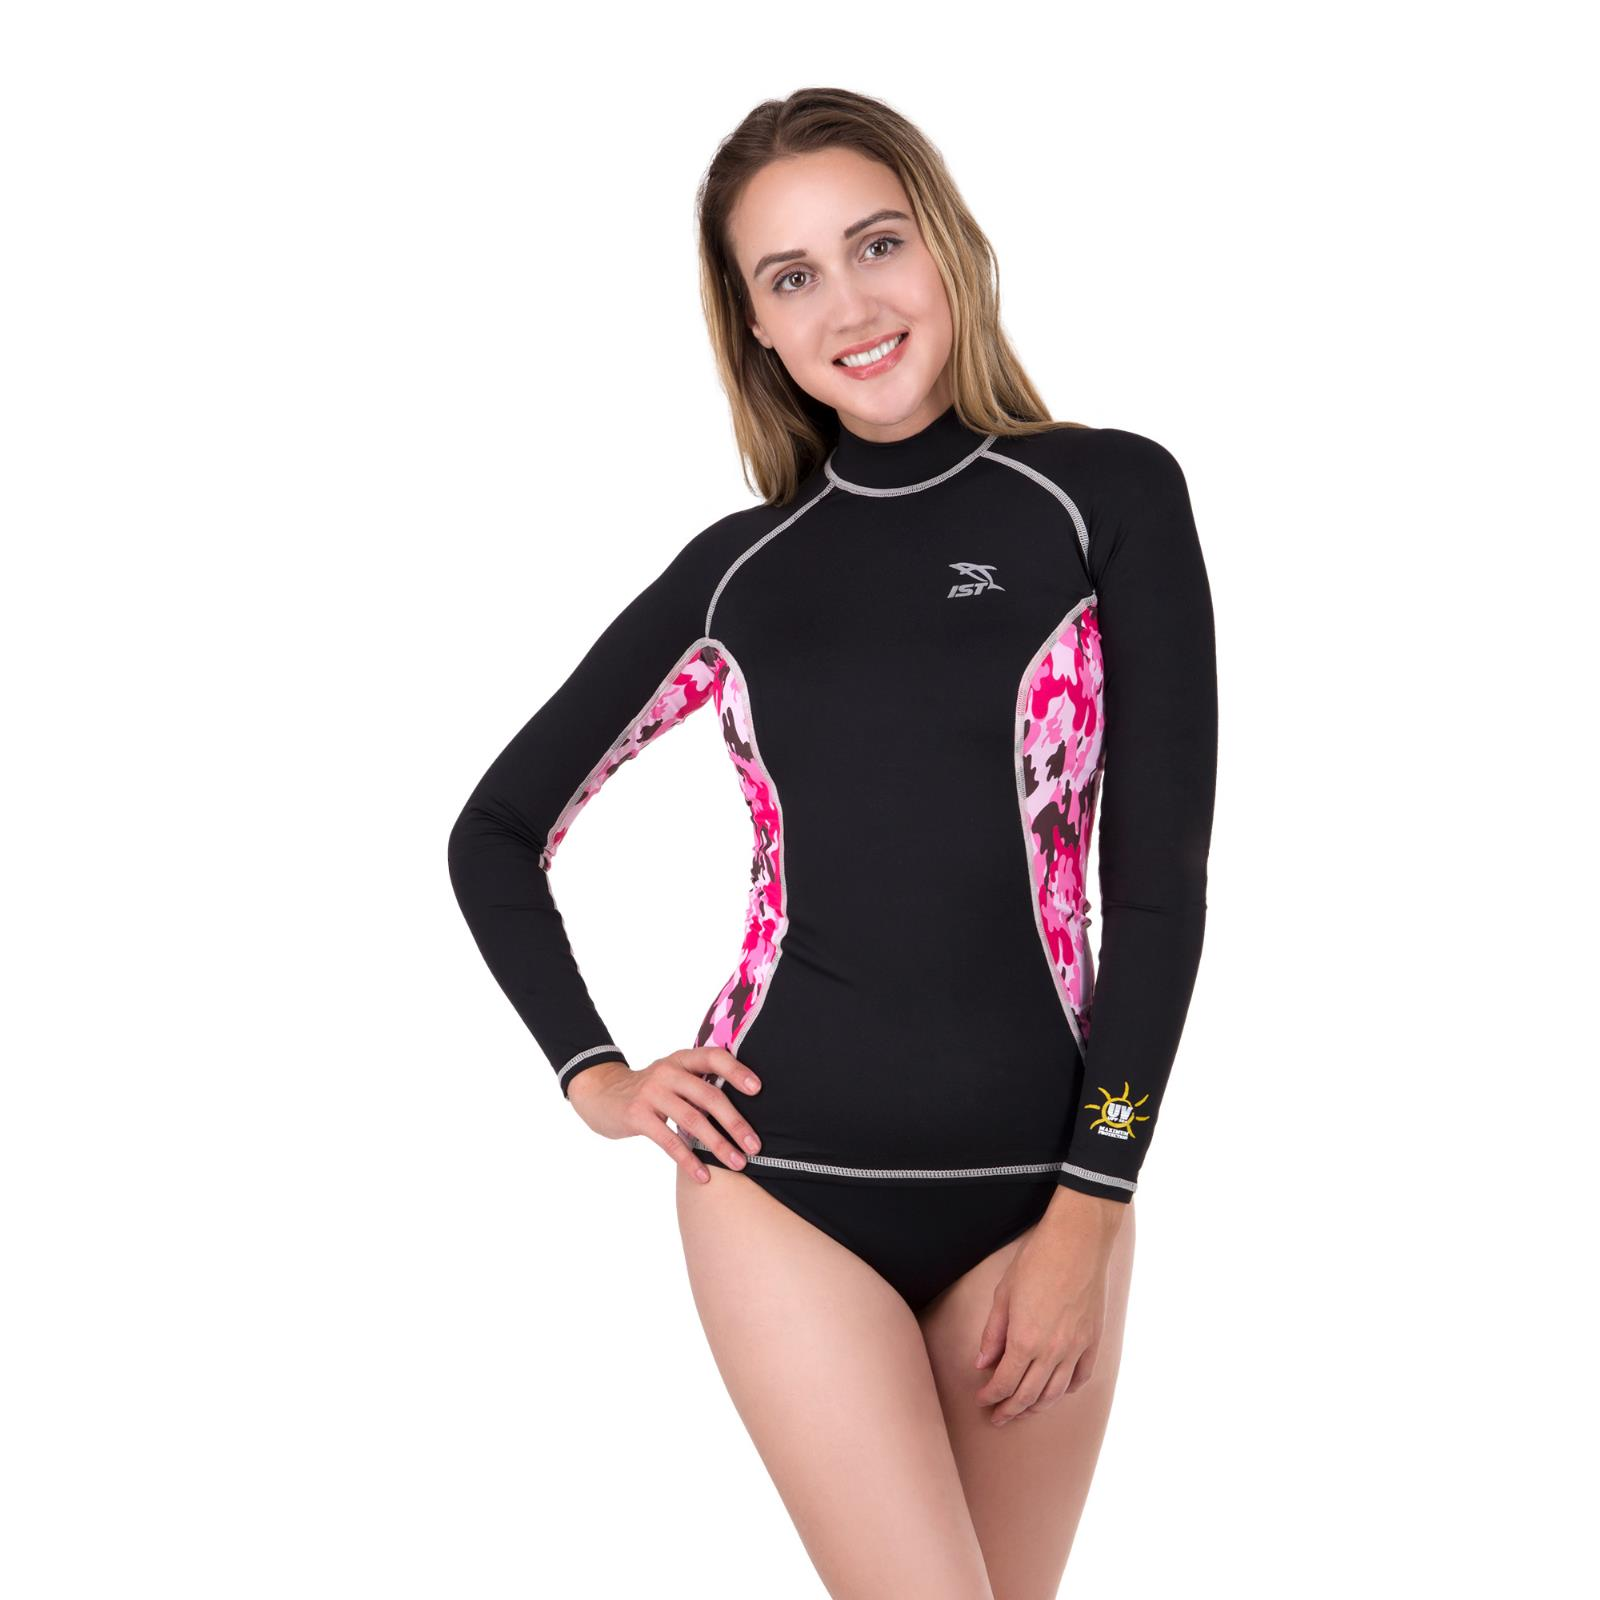 Women's Long Sleeve Rash Guard